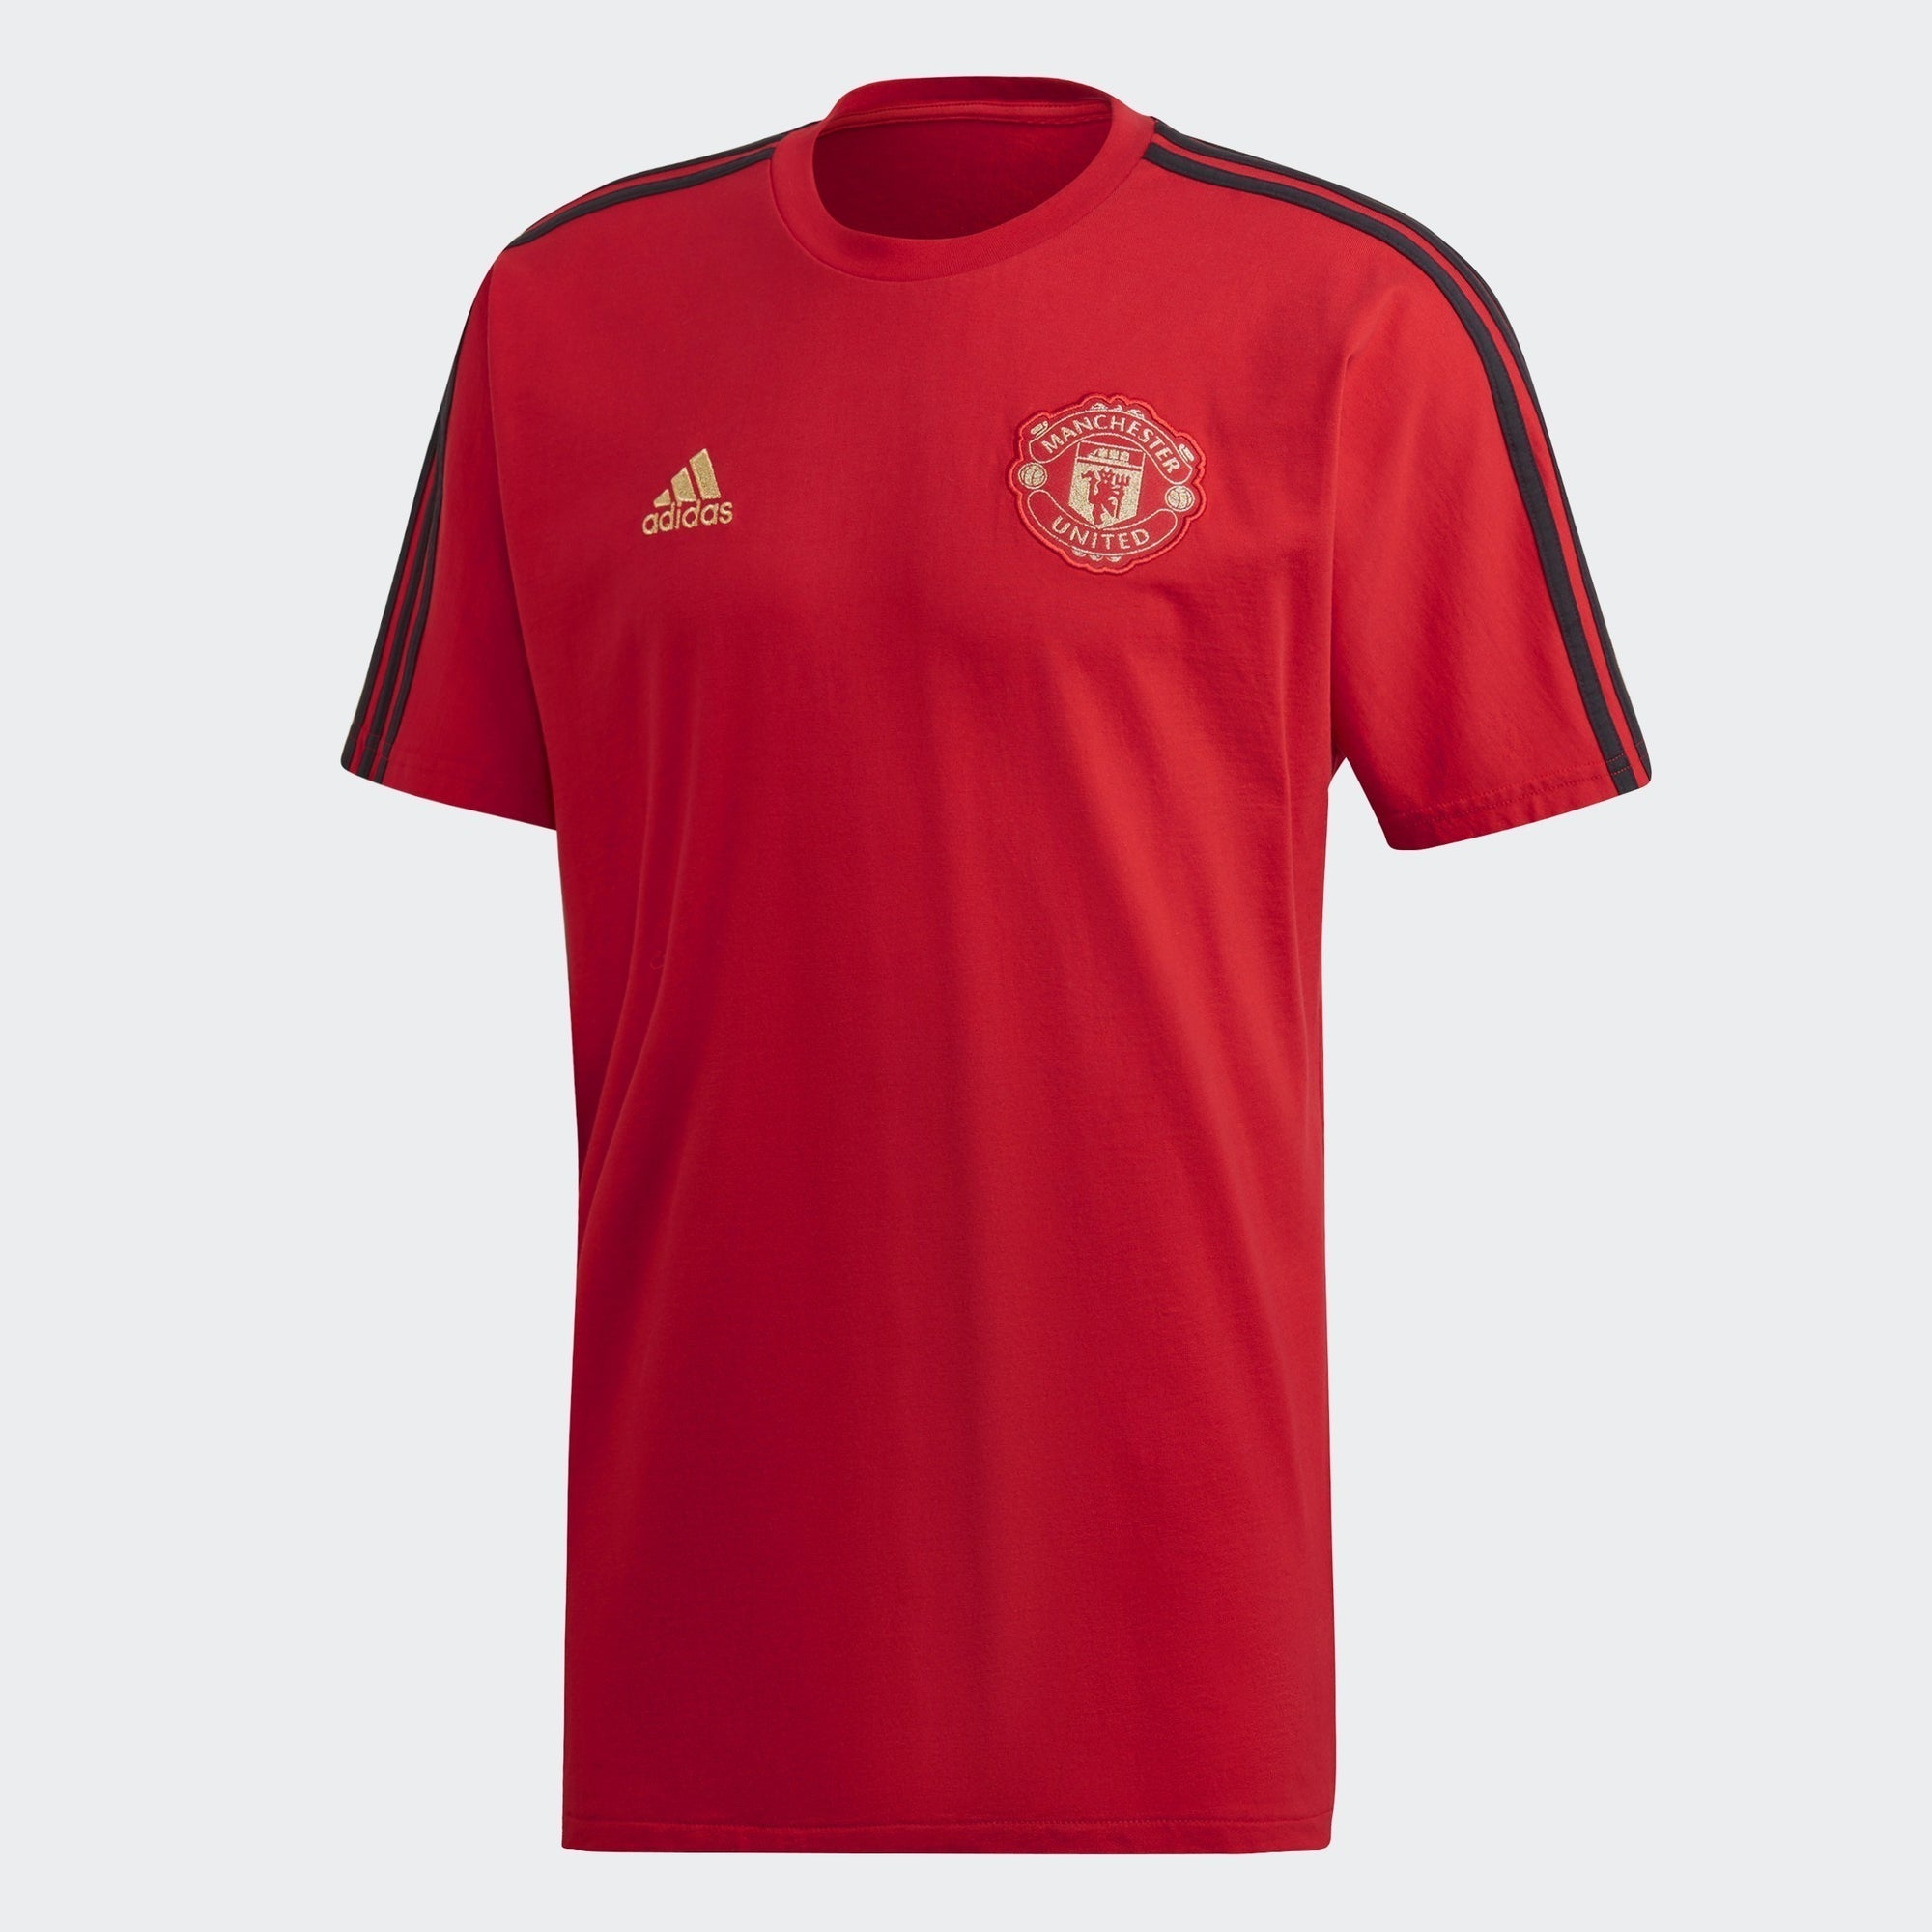 Men's Manchester United Chinese New Year T-Shirt - Real Red